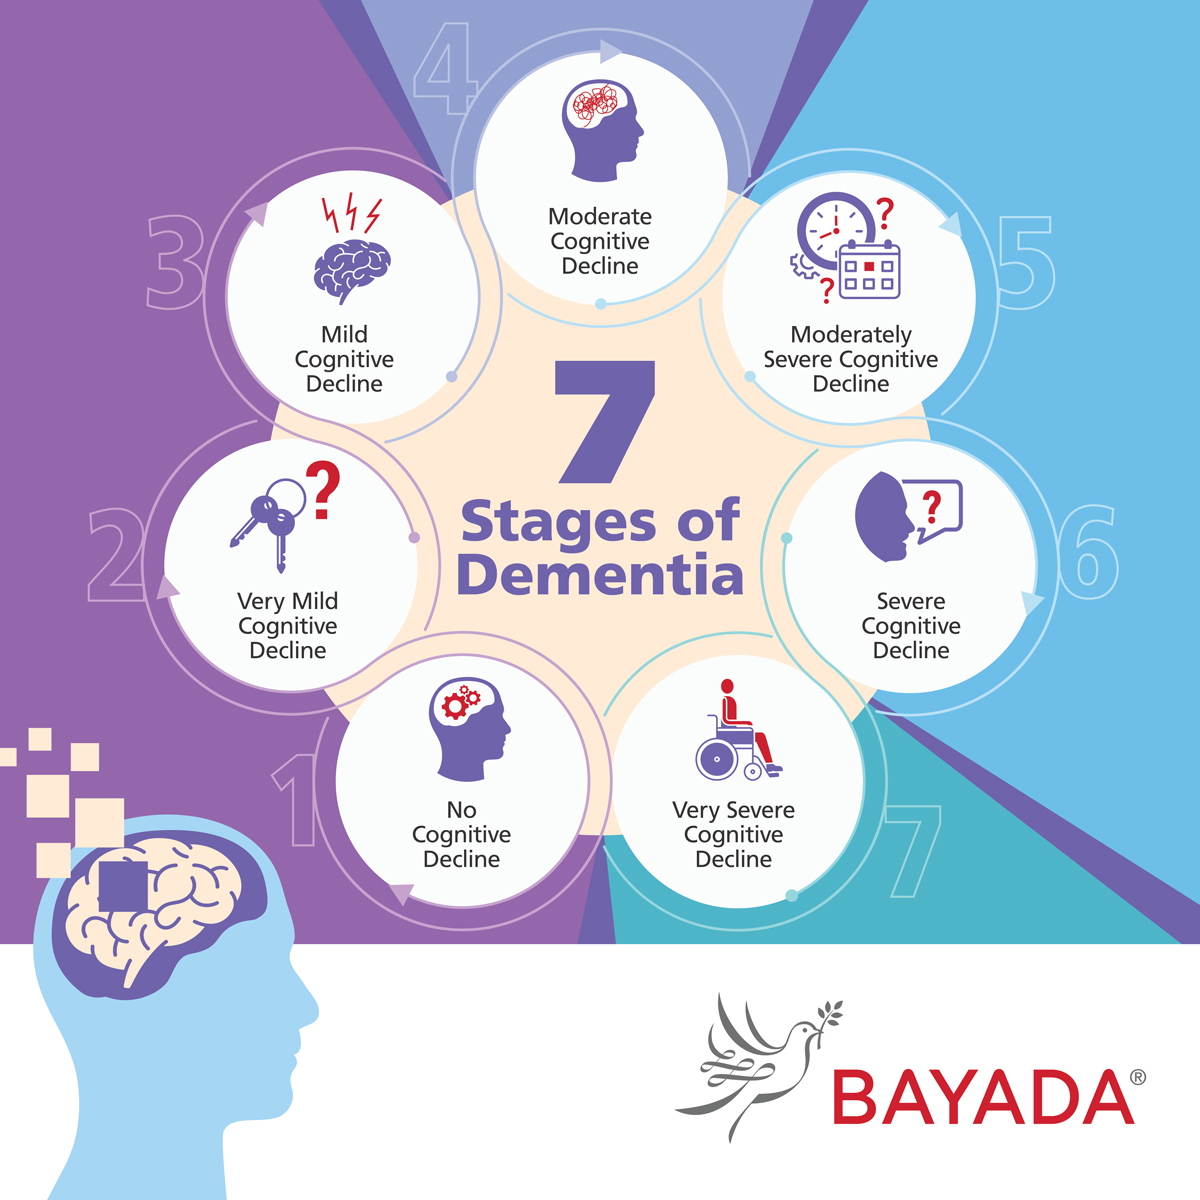 The stages of dementia